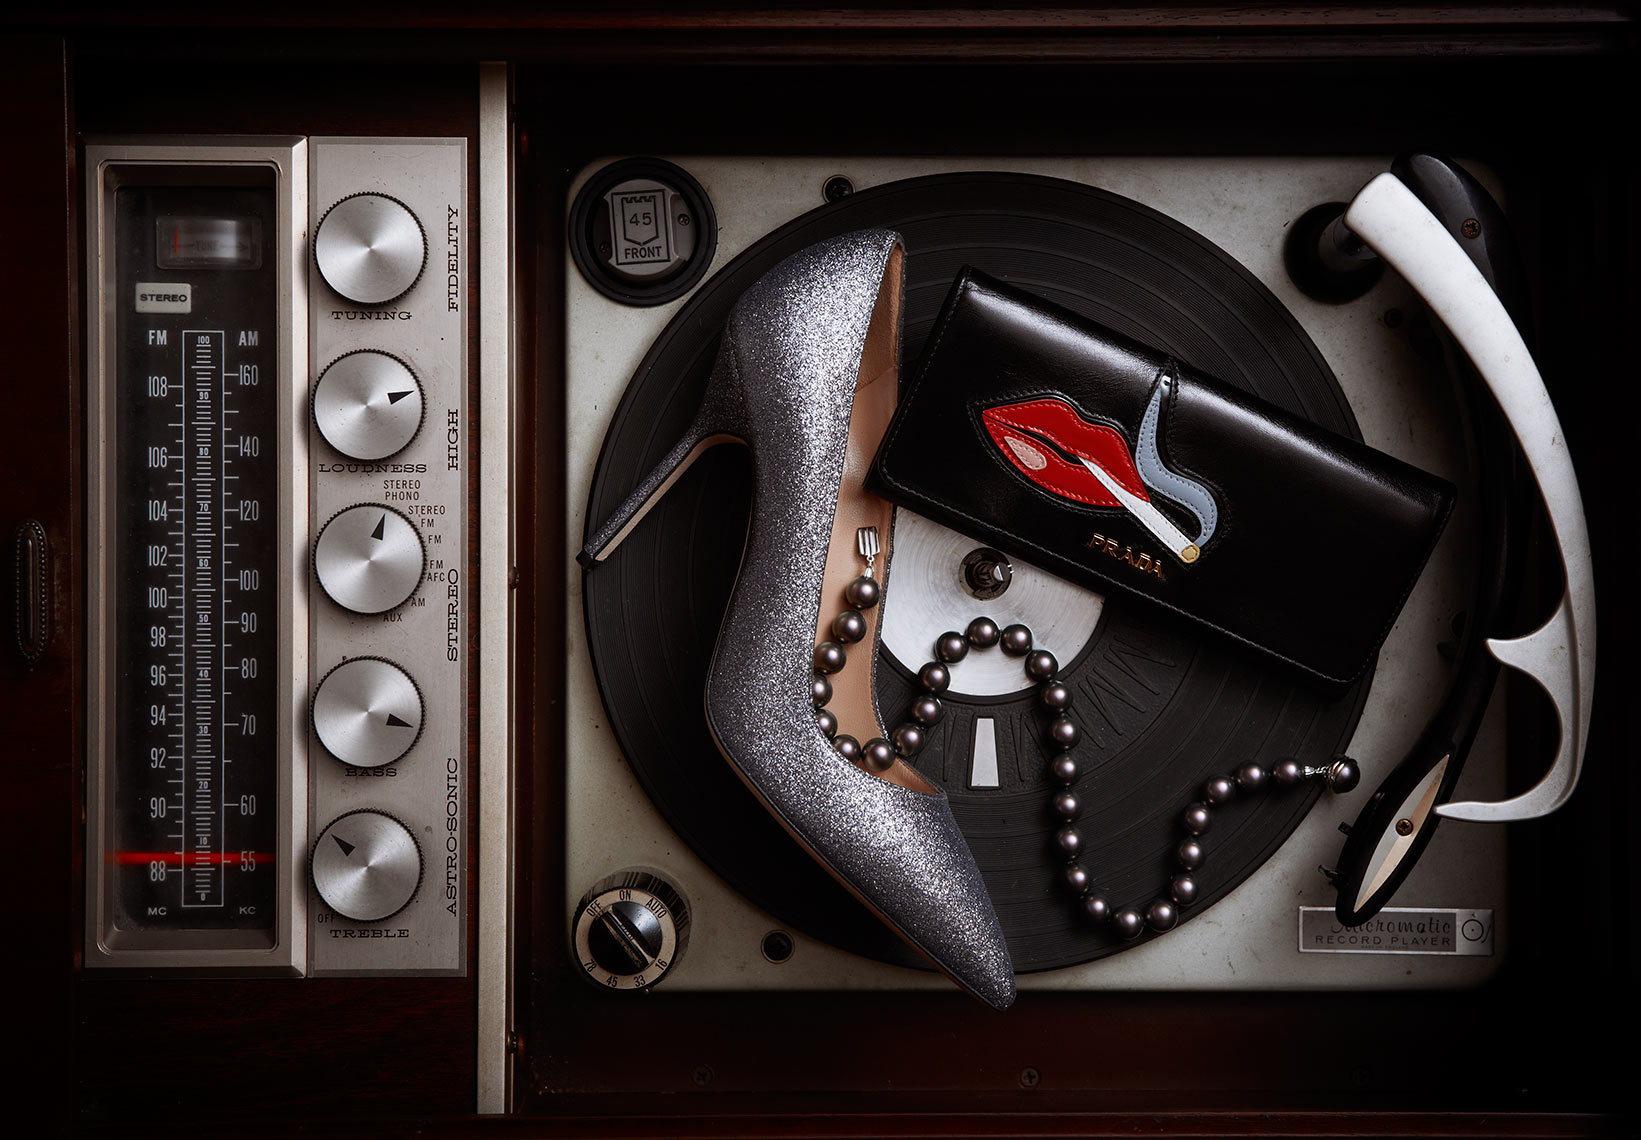 Prada still life photo on old record player.